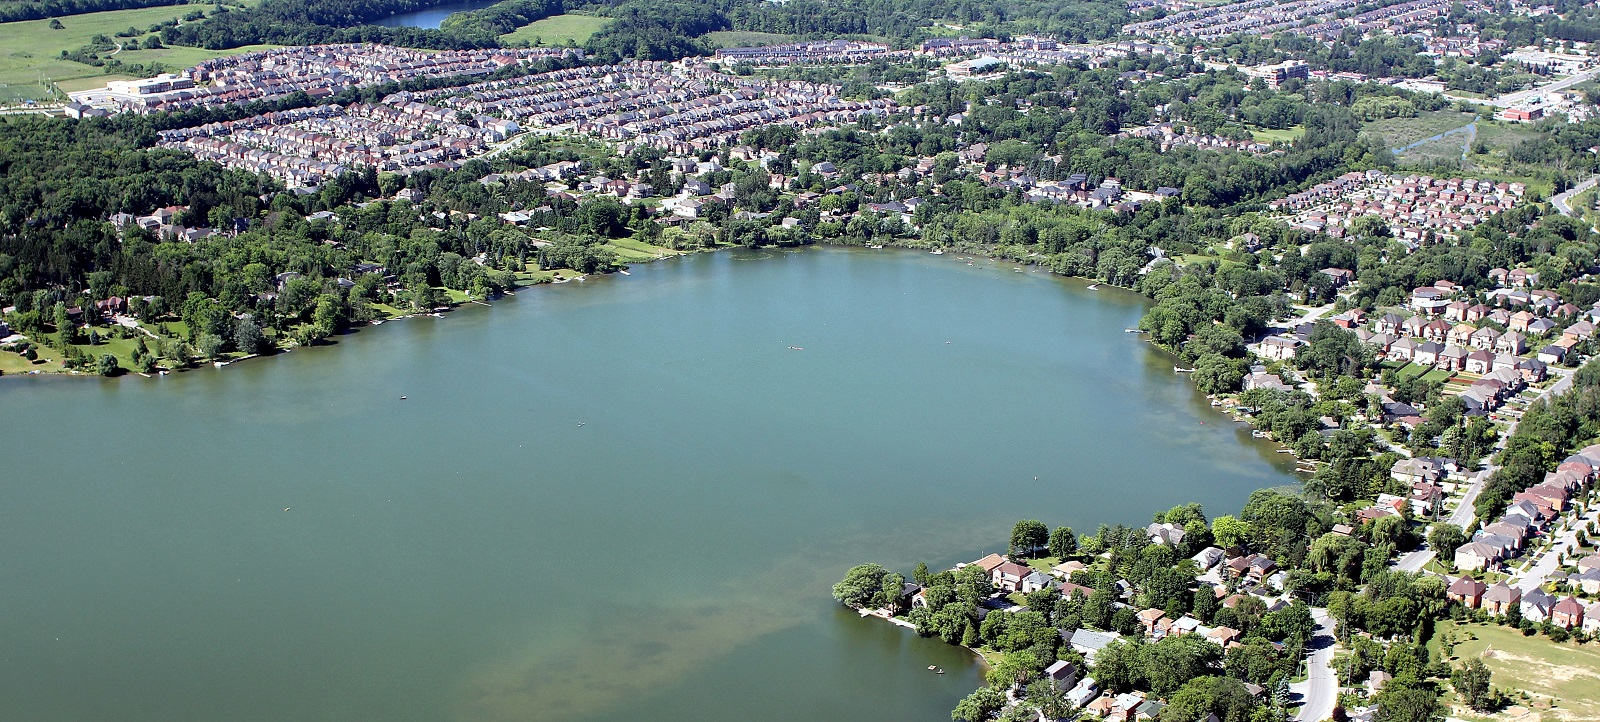 Aerial view of Lake Wilcox and the surrounding neighbourhood